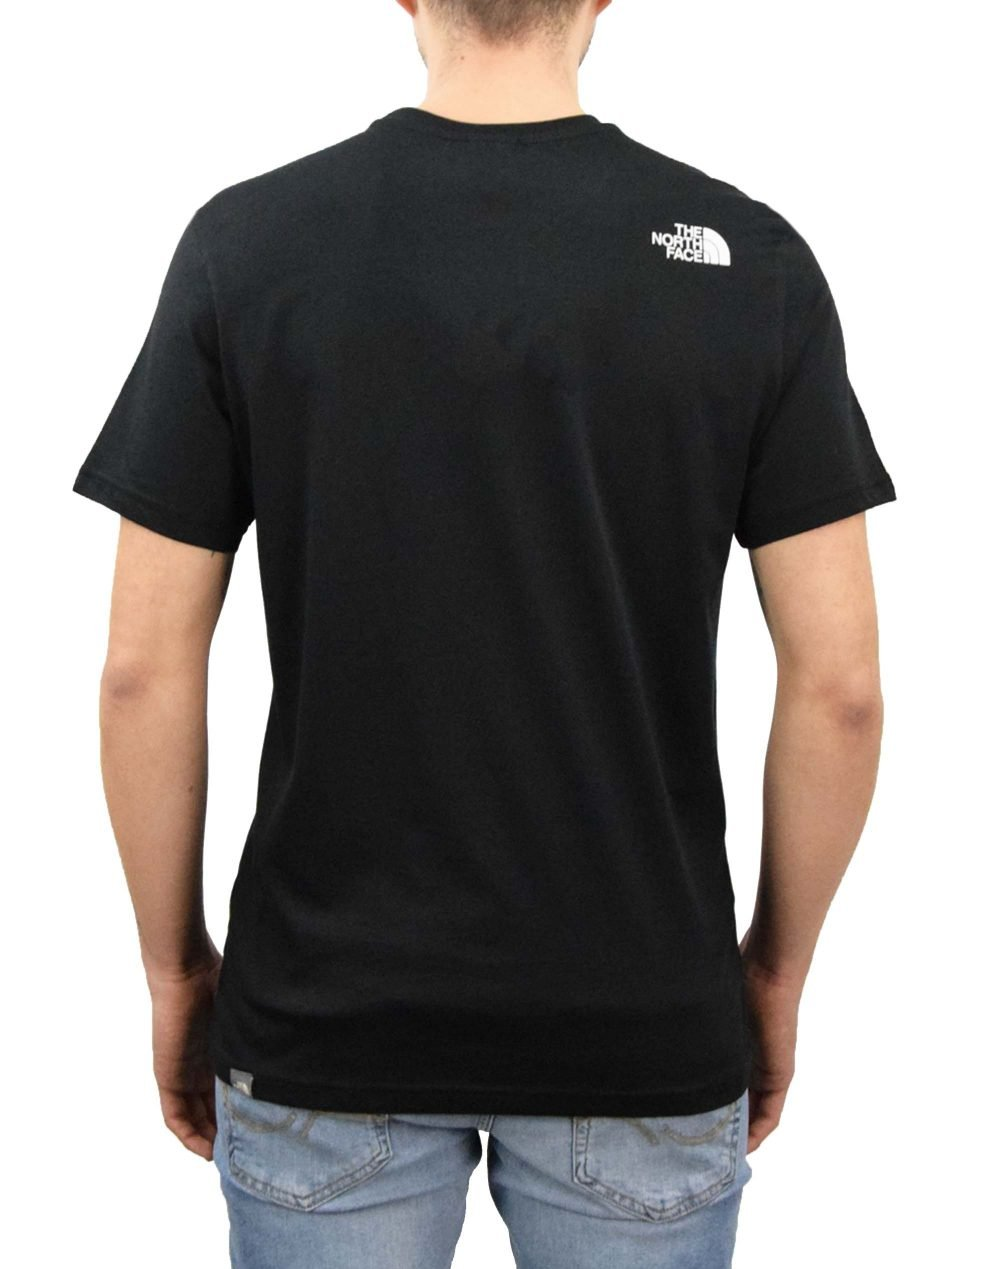 The North Face Simple Dome Tee (NF0A2TX5JK31) Black